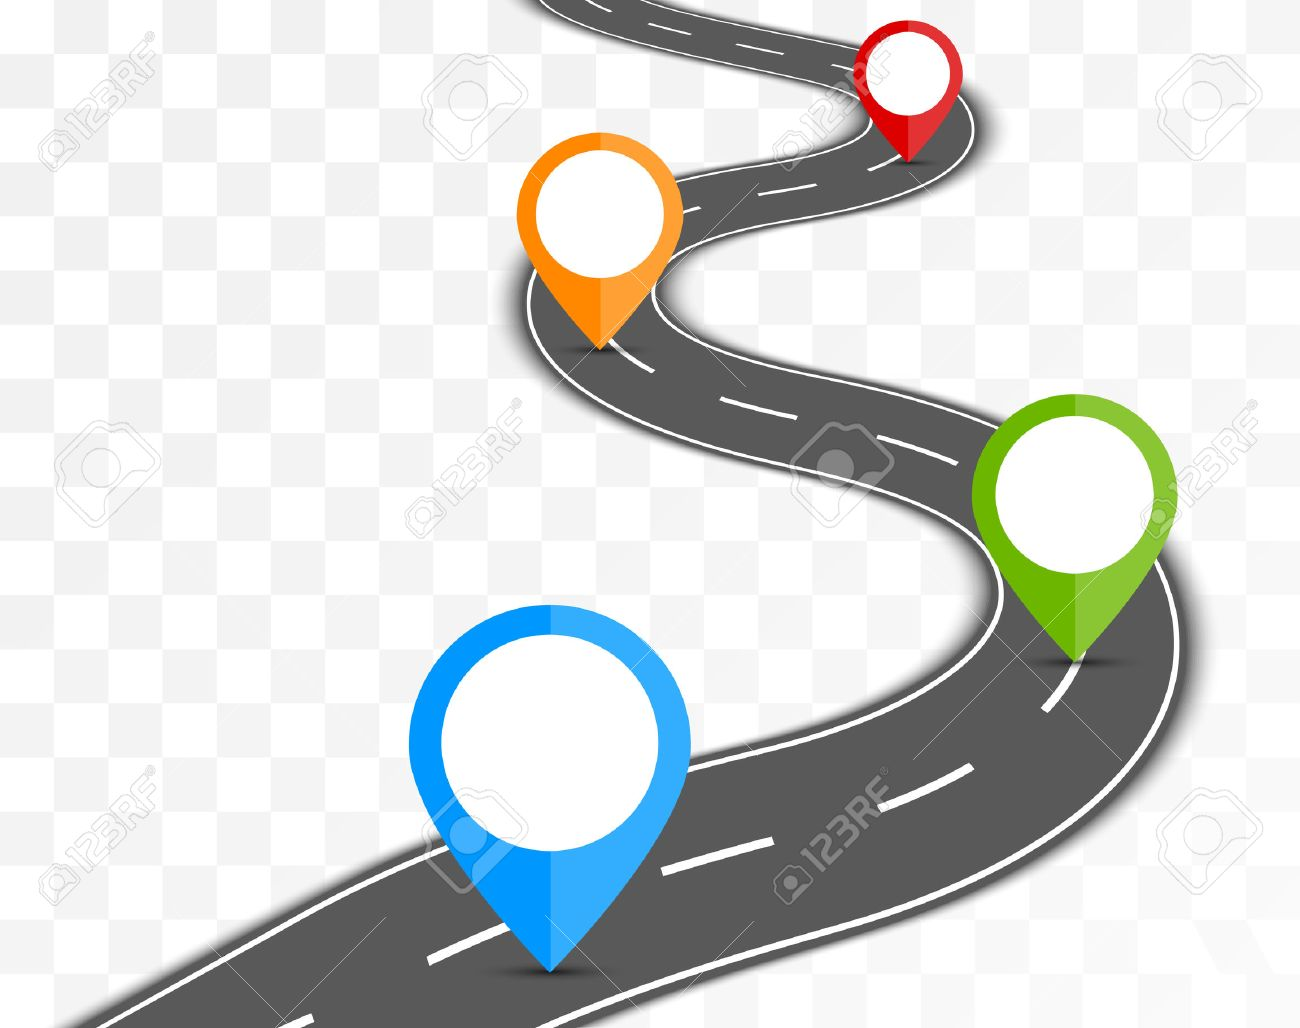 Road path on transparent background with pin pointer illustration - 52125602